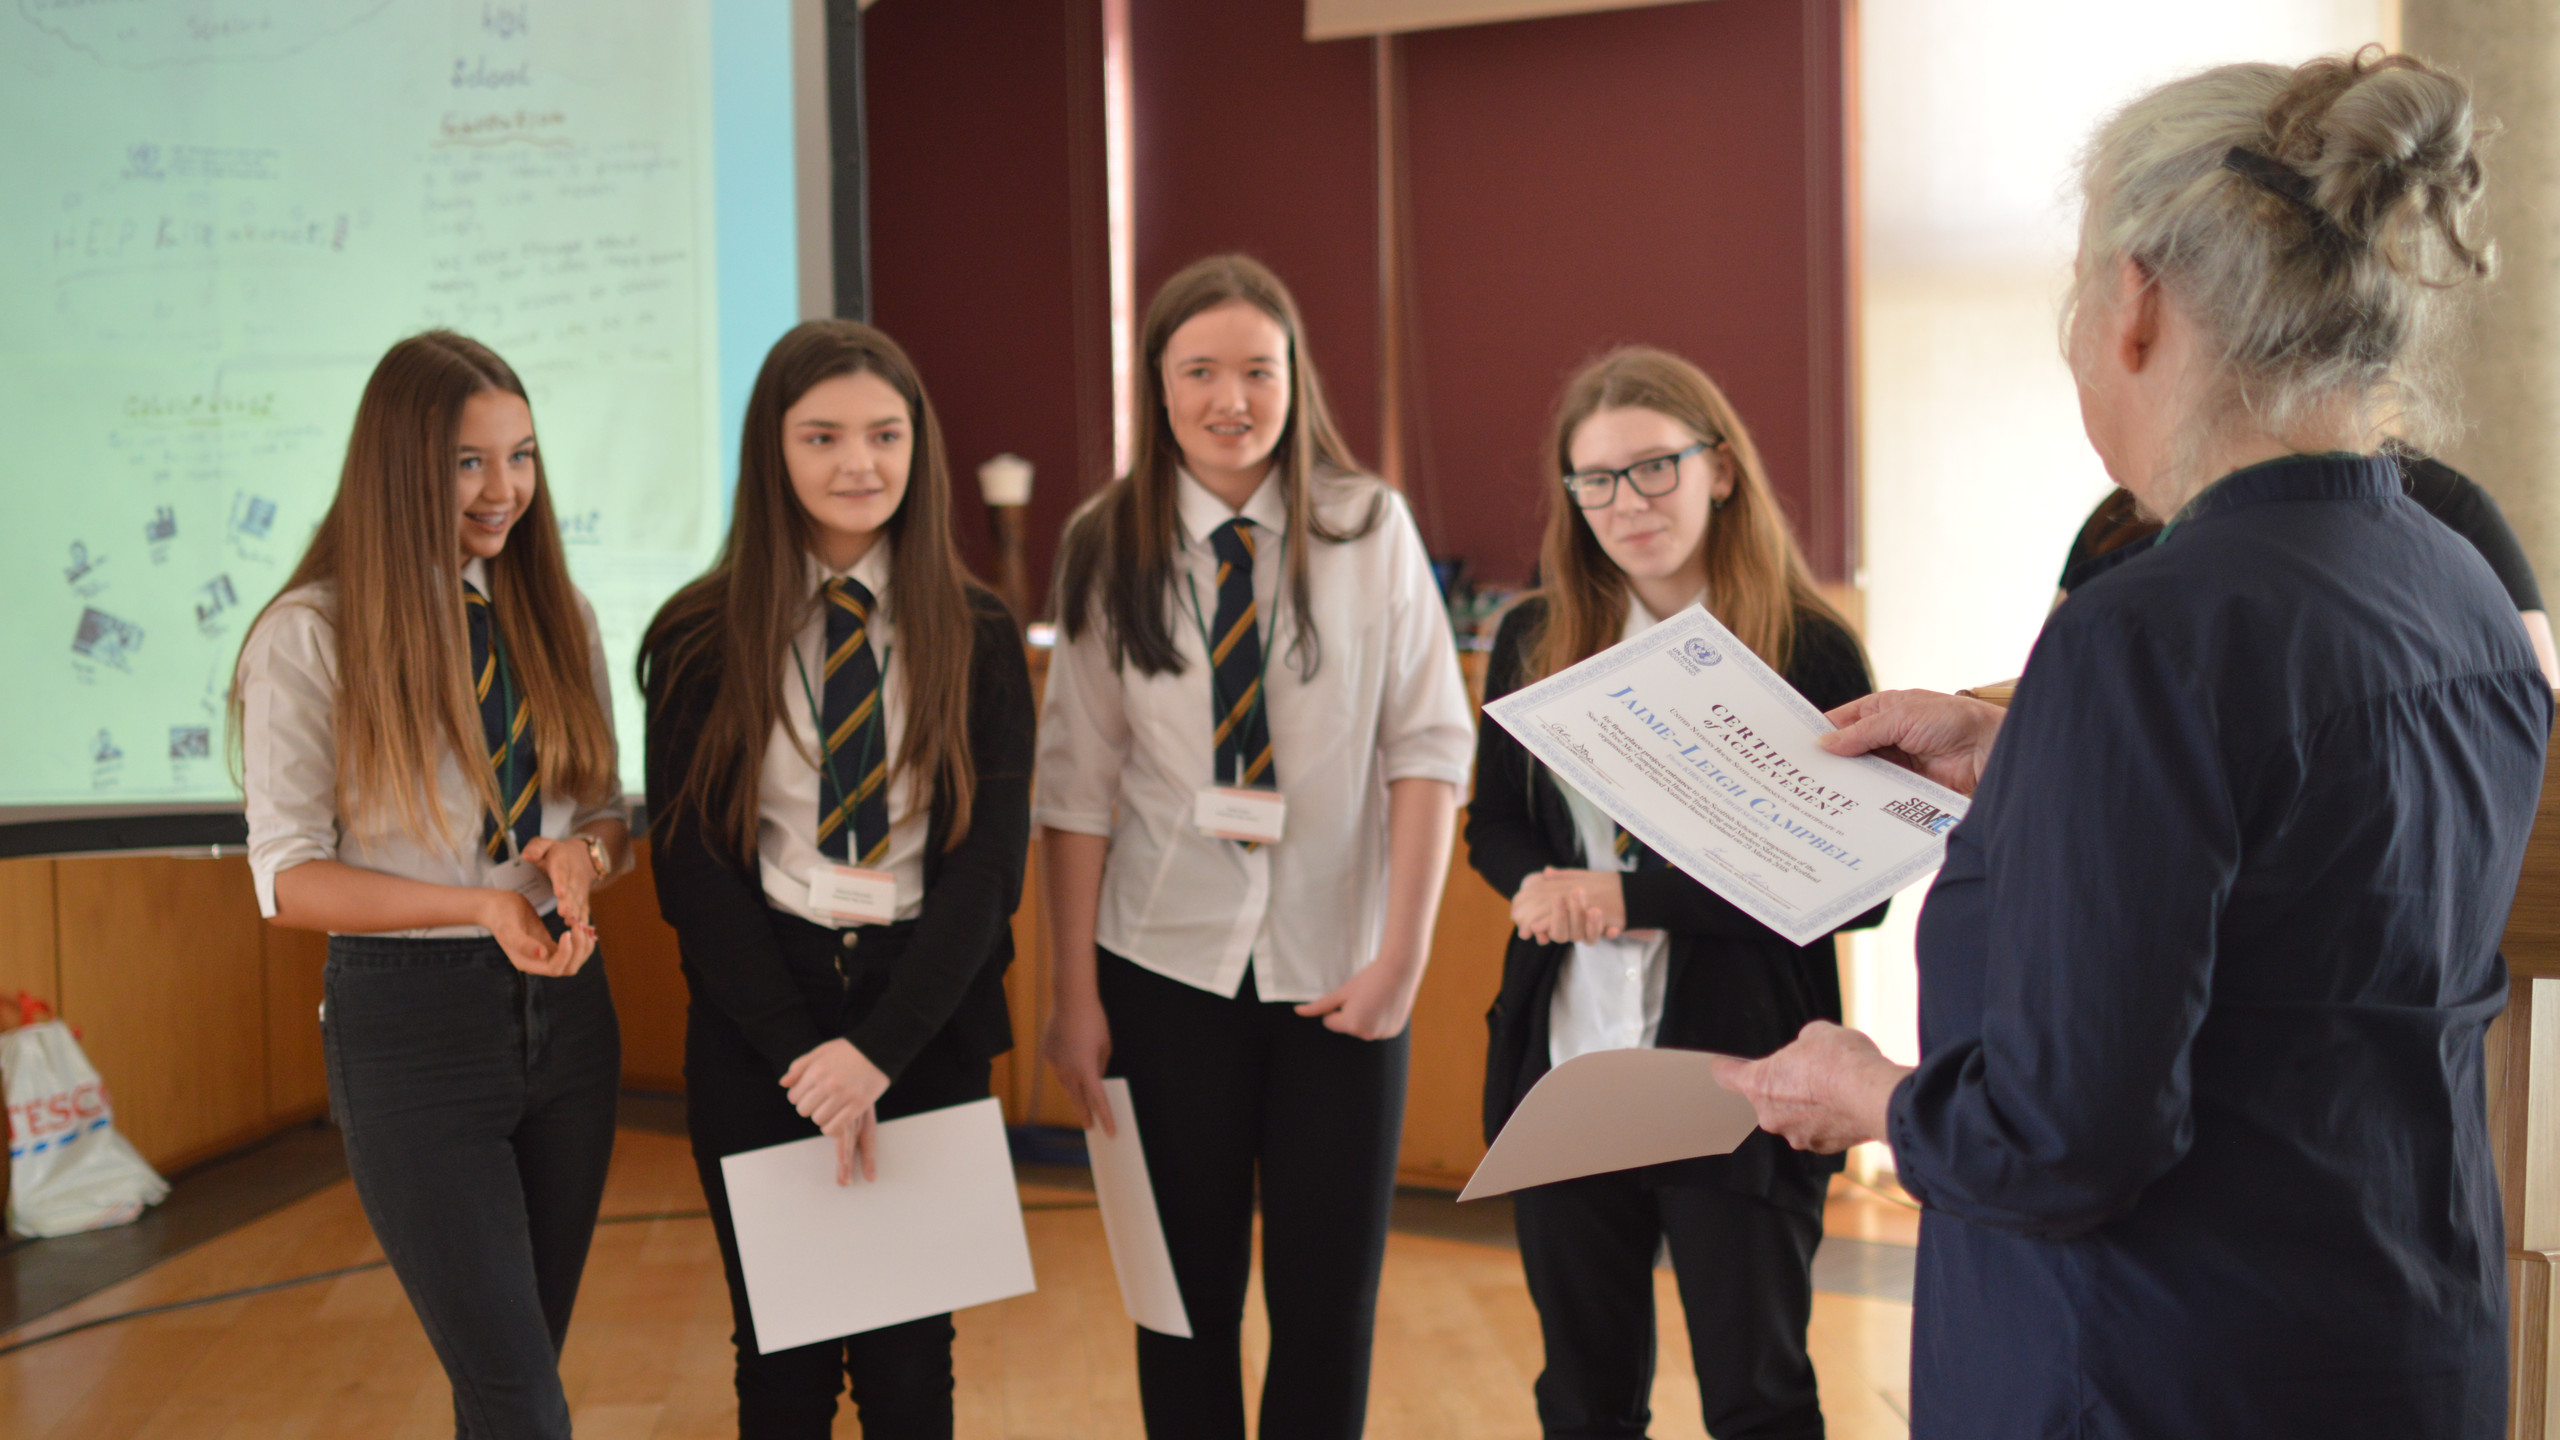 Winners of the Scottish Schools Competition, Kircaldy High School, receive their certificates of achievement.